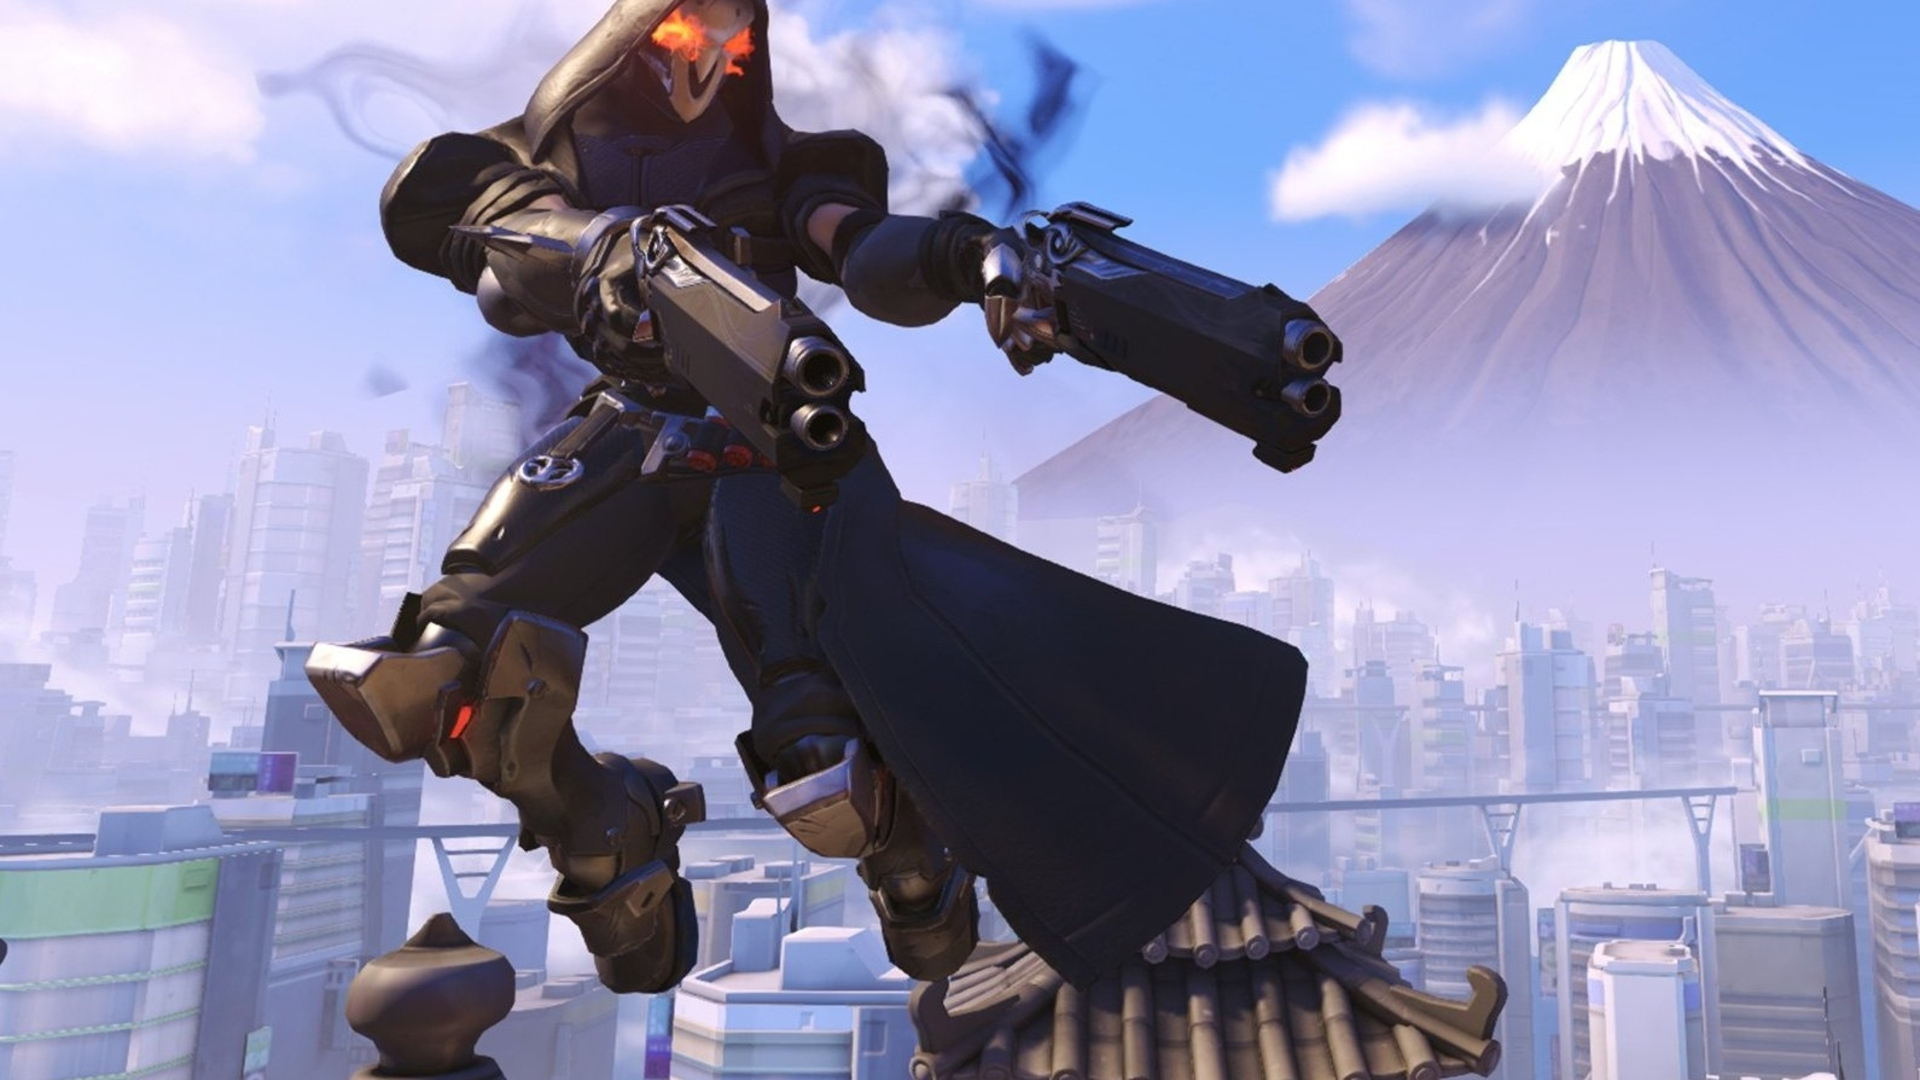 Blizzard reveals Overwatch, a team-based competitive first-person shooter